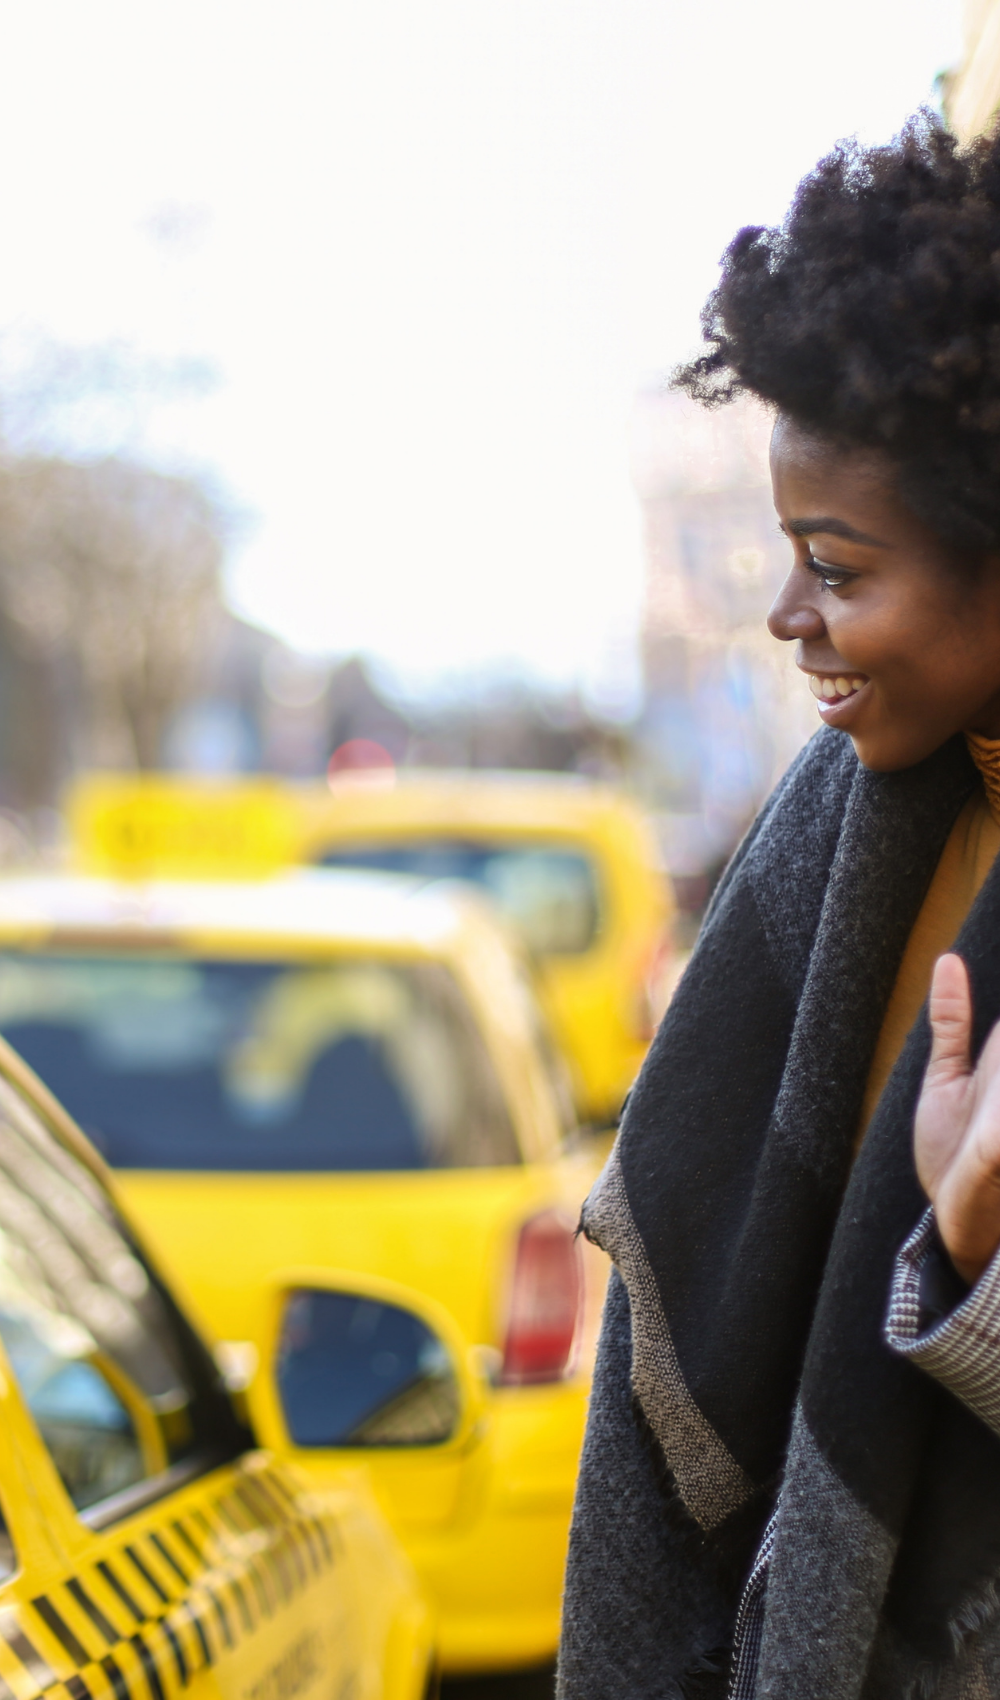 woman raising her hand to call a taxi